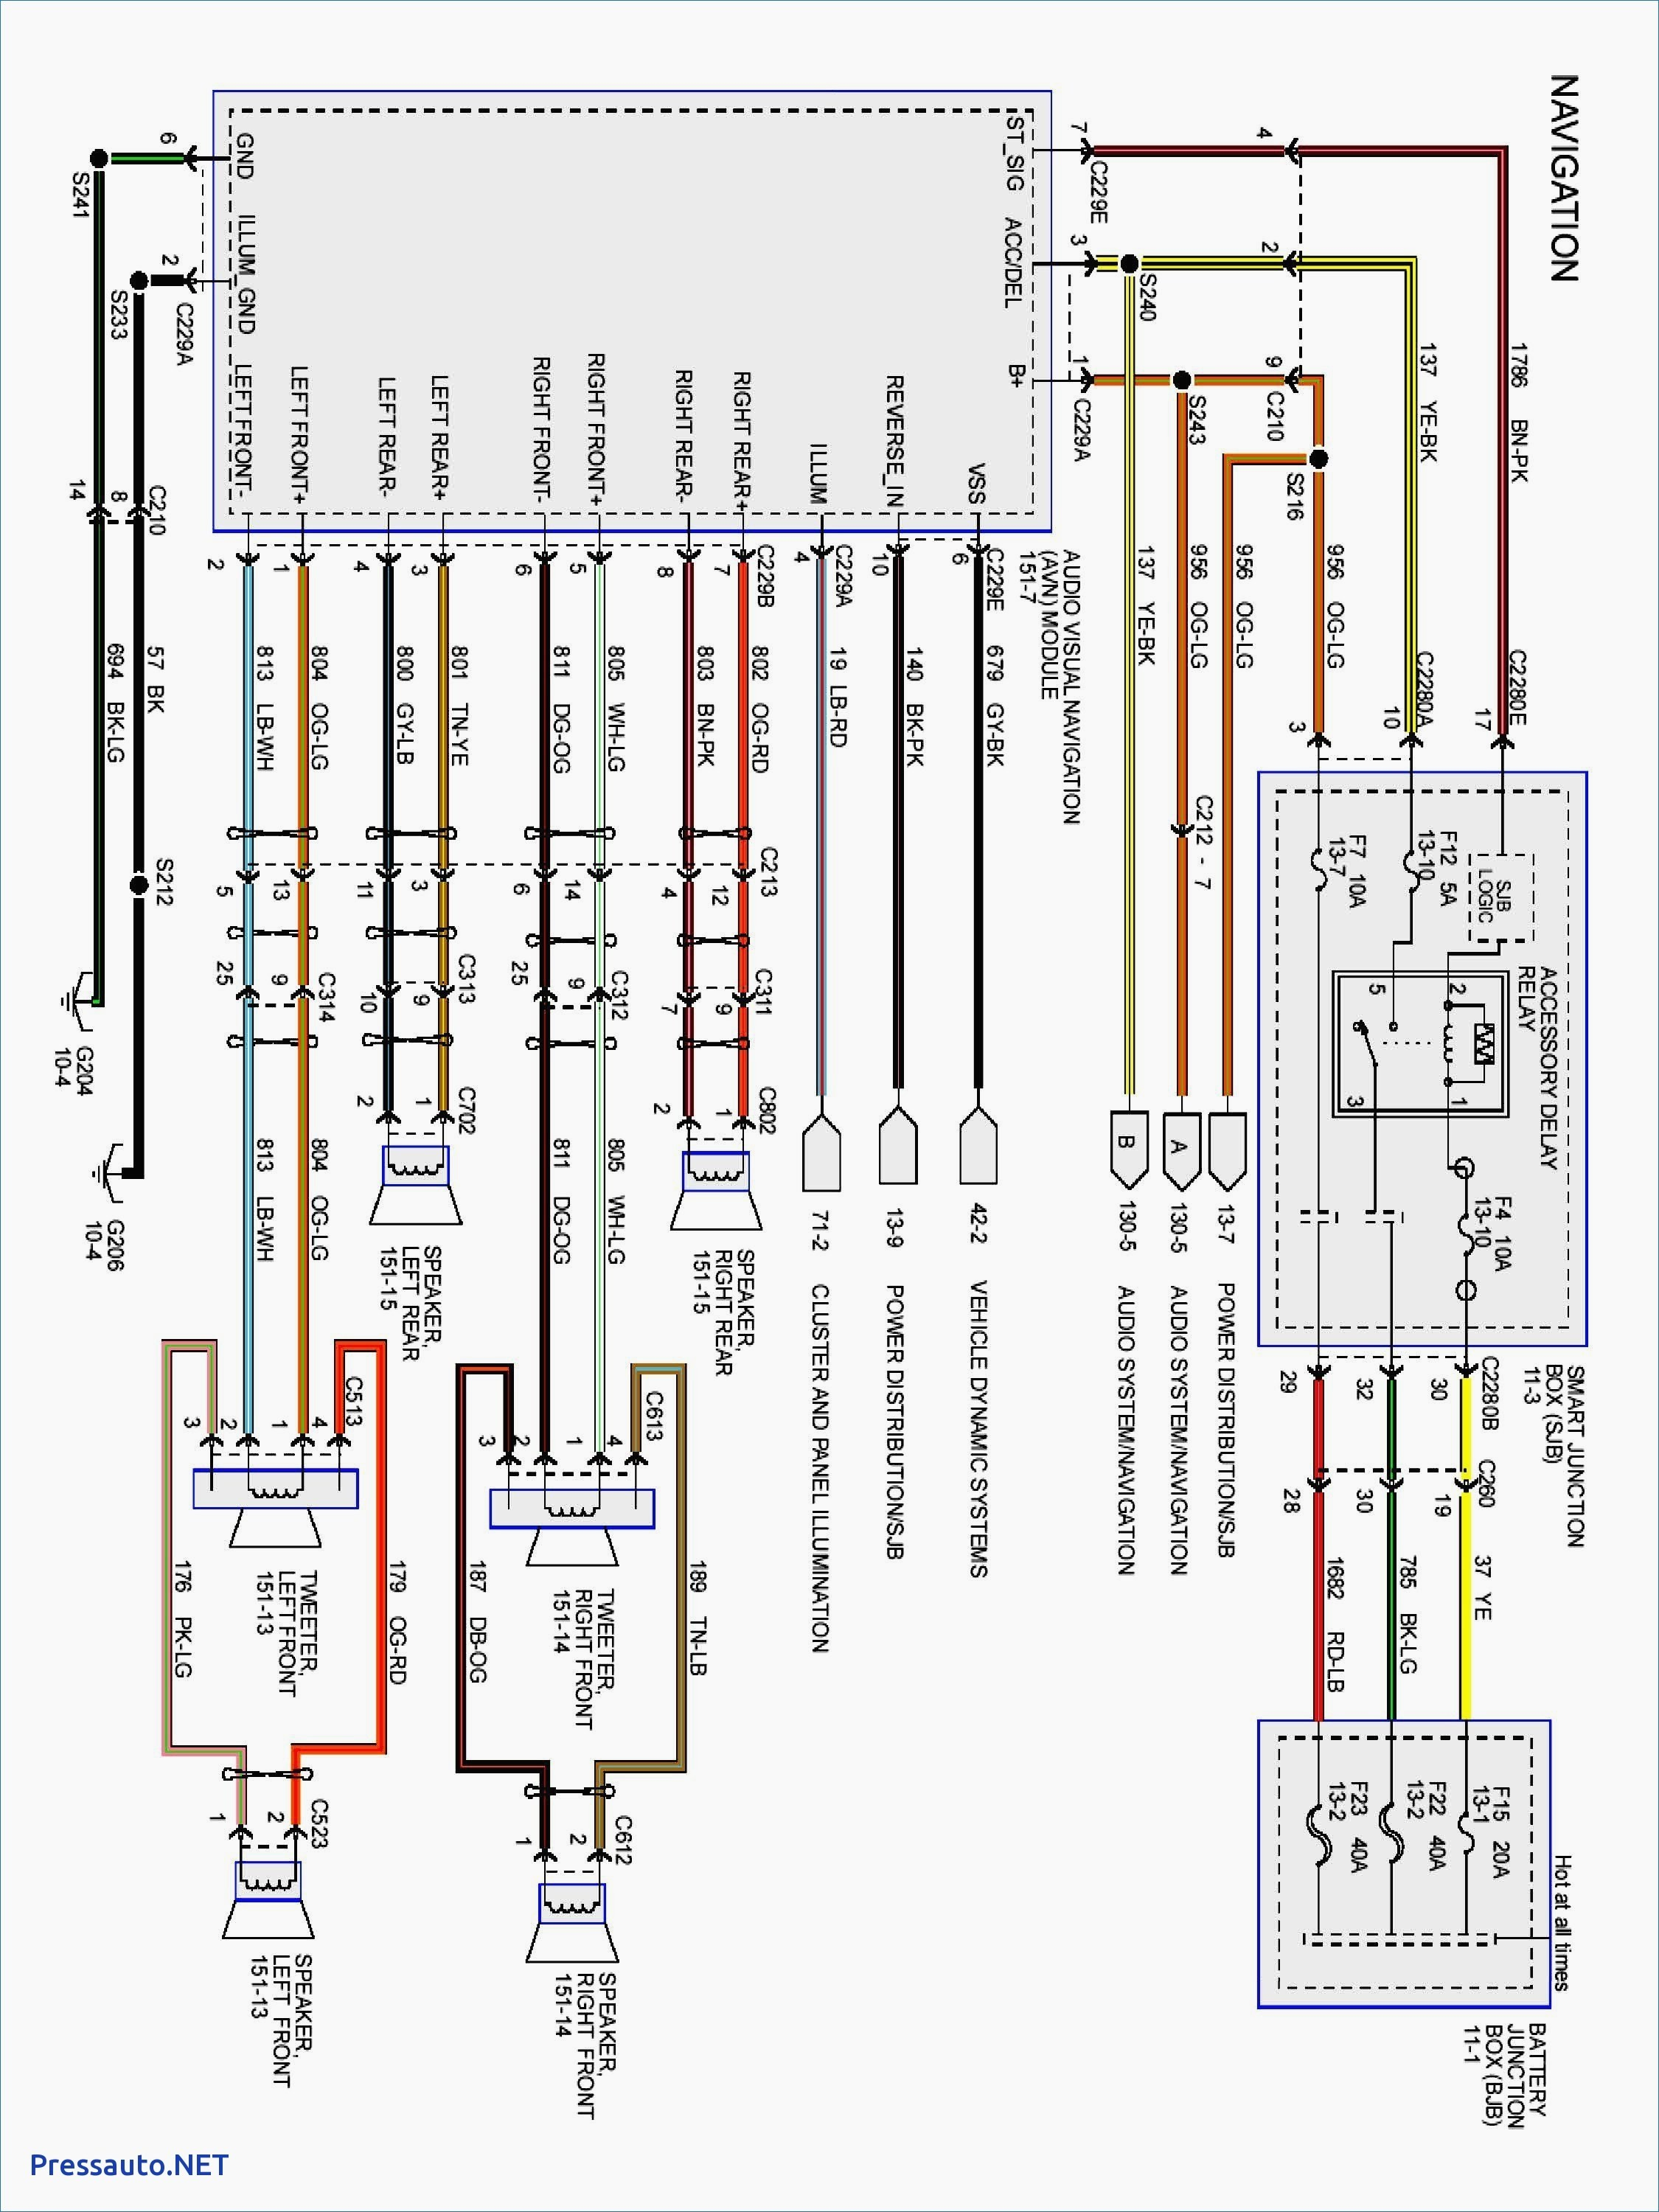 2002 ford Focus Engine Diagram 2002 ford Focus Zx3 Wiring Diagram Wiring Diagram for You Of 2002 ford Focus Engine Diagram